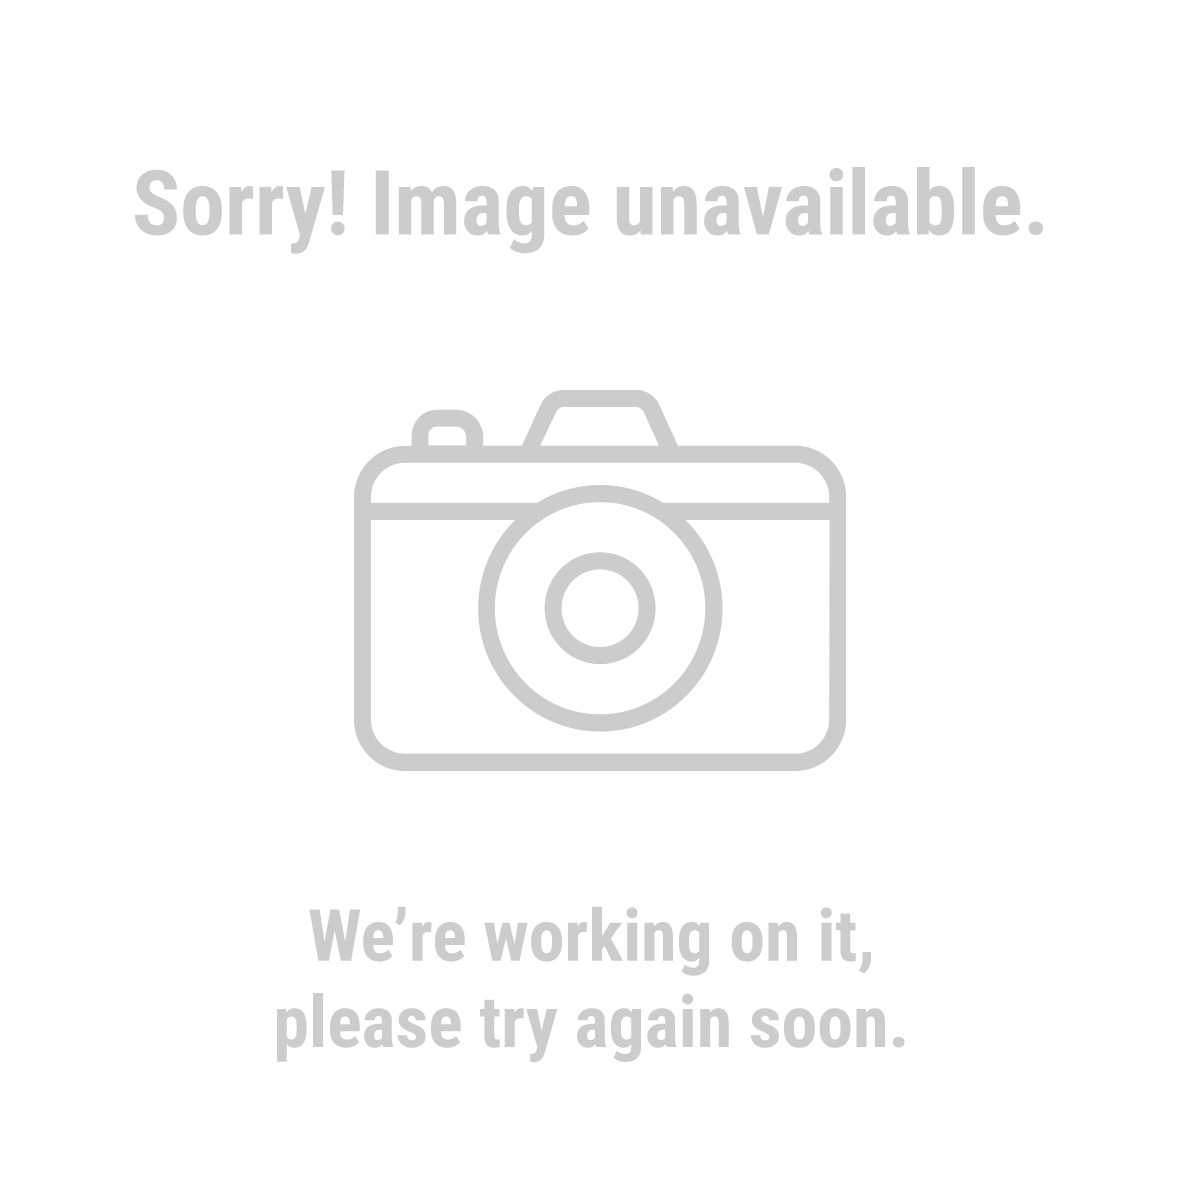 Homemade Pickup Truck Tailgate Loading Ramps - Carpentry - DIY ...